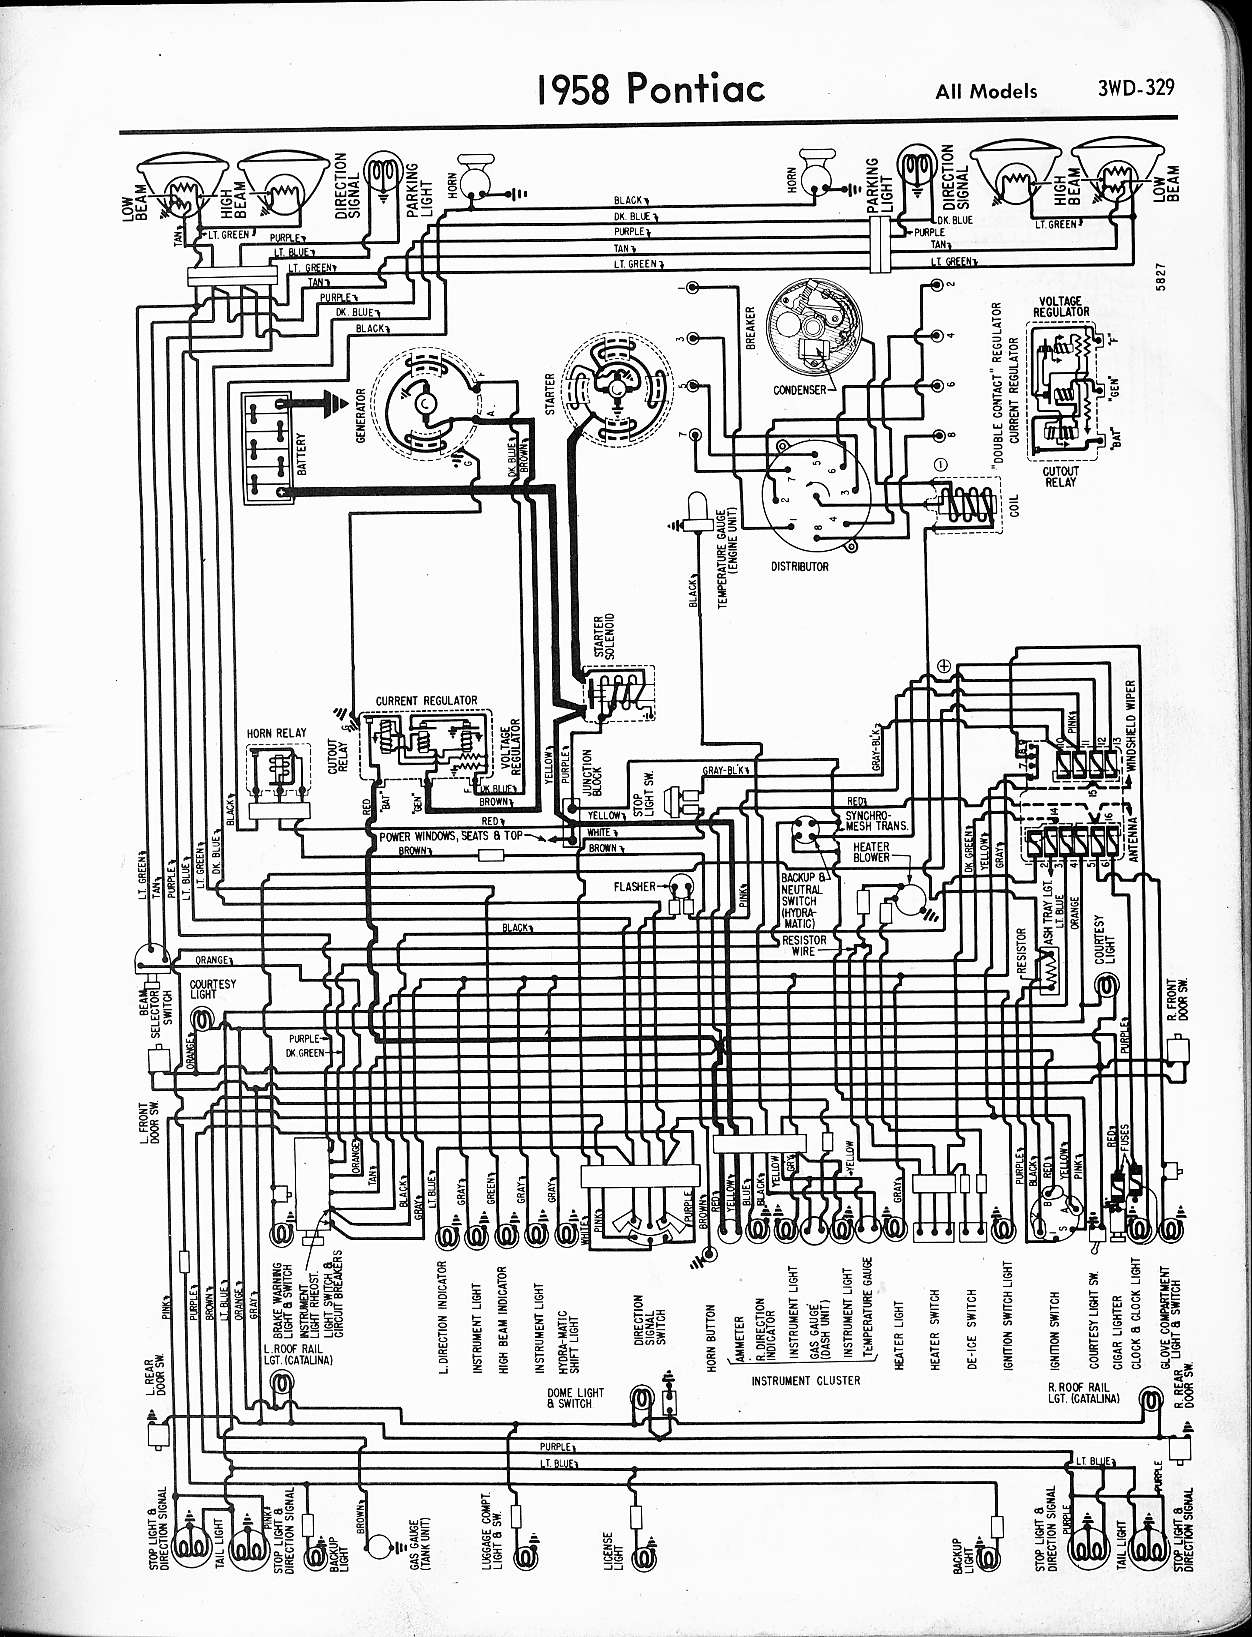 wallace racing wiring diagrams rh wallaceracing com 2004 Pontiac Grand Prix Wiring-Diagram 2003 Pontiac Grand Prix Wiring-Diagram